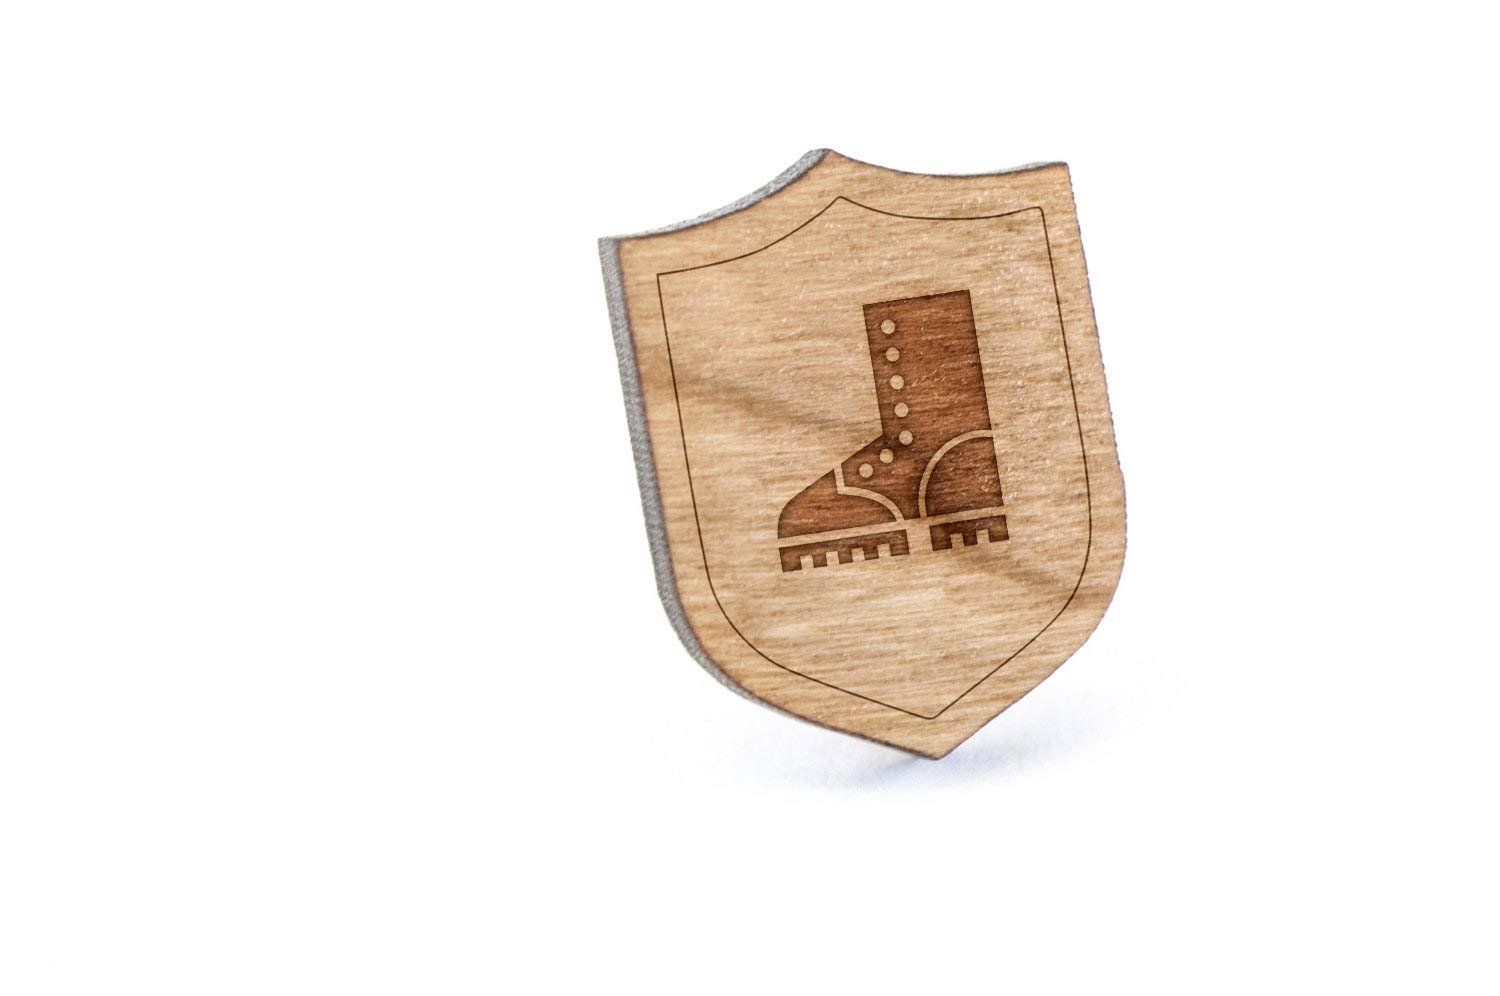 Logger Boot Lapel Pin, Wooden Pin And Tie Tack | Rustic And Minimalistic Groomsmen Gifts And Wedding Accessories